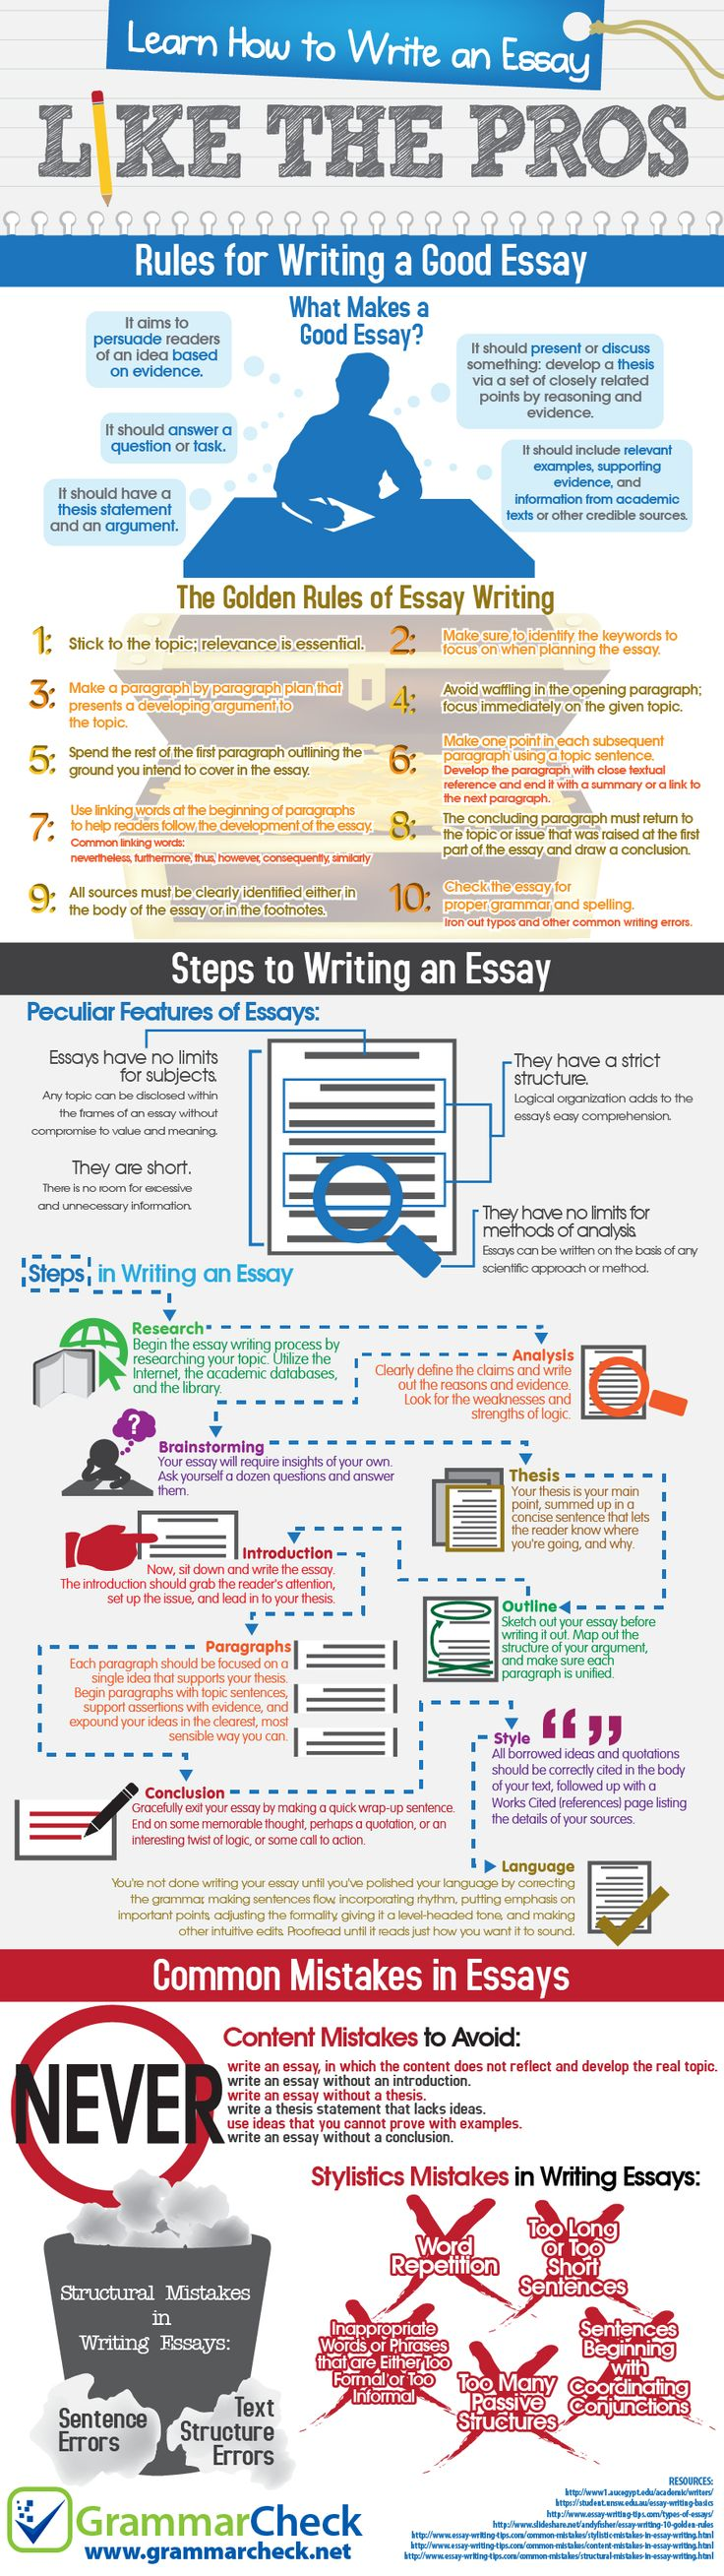 Does anyone have in depth understanding of how to write an A+ essay ?